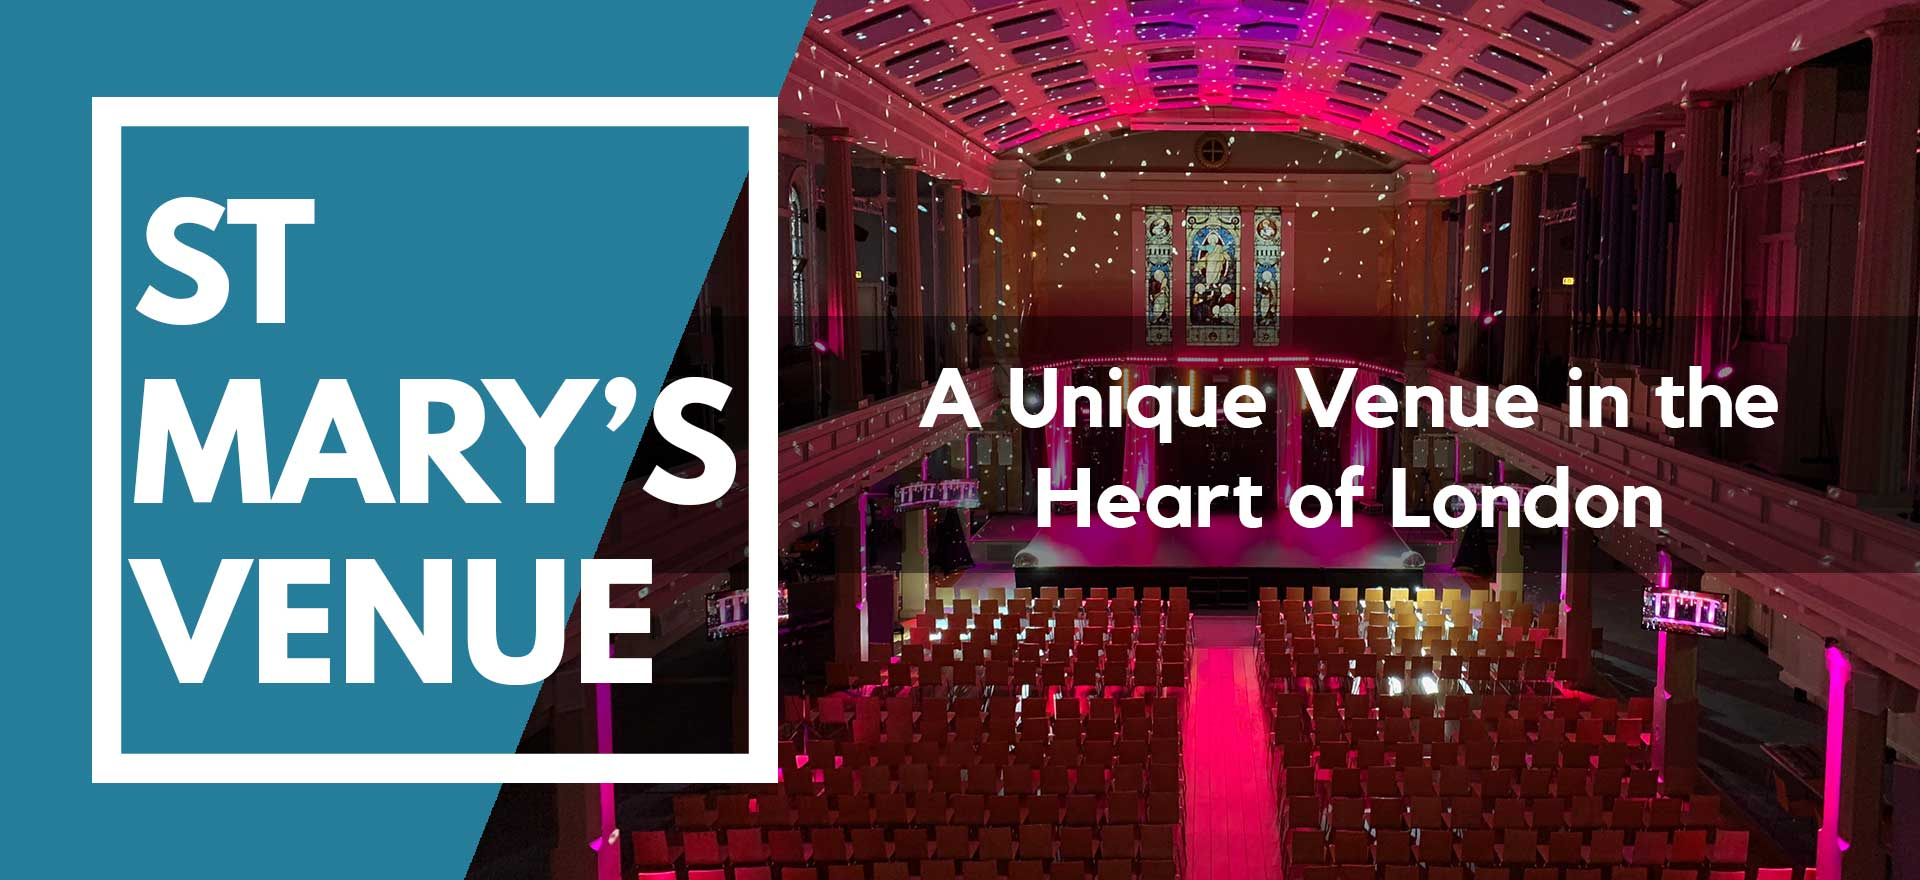 600 seats theatre style with stage and pink event lighting